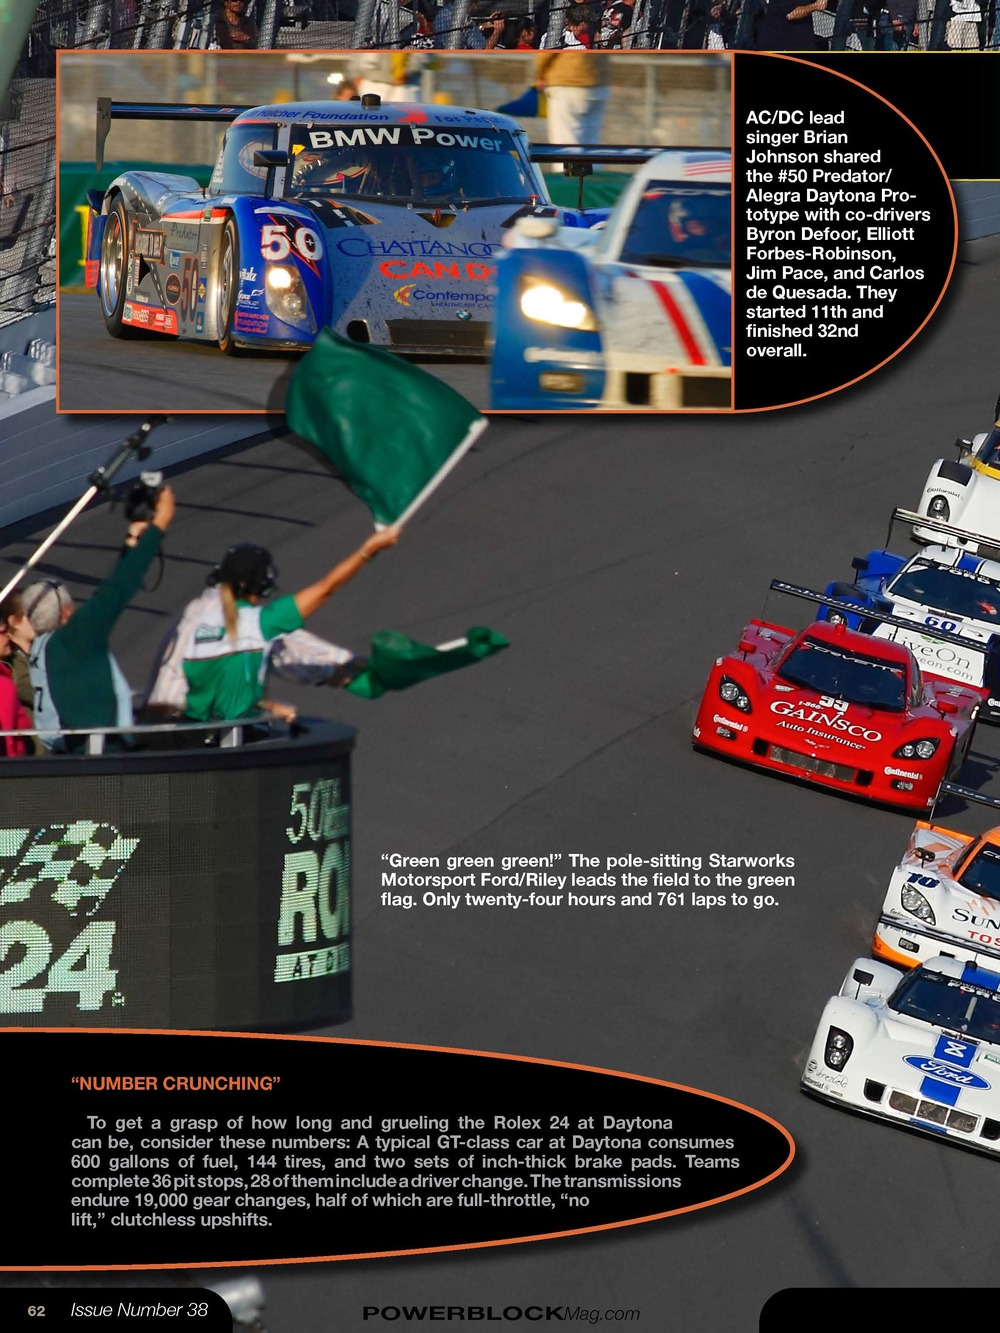 powerblockmagazine_issue38_rolex24_Page_08.jpg